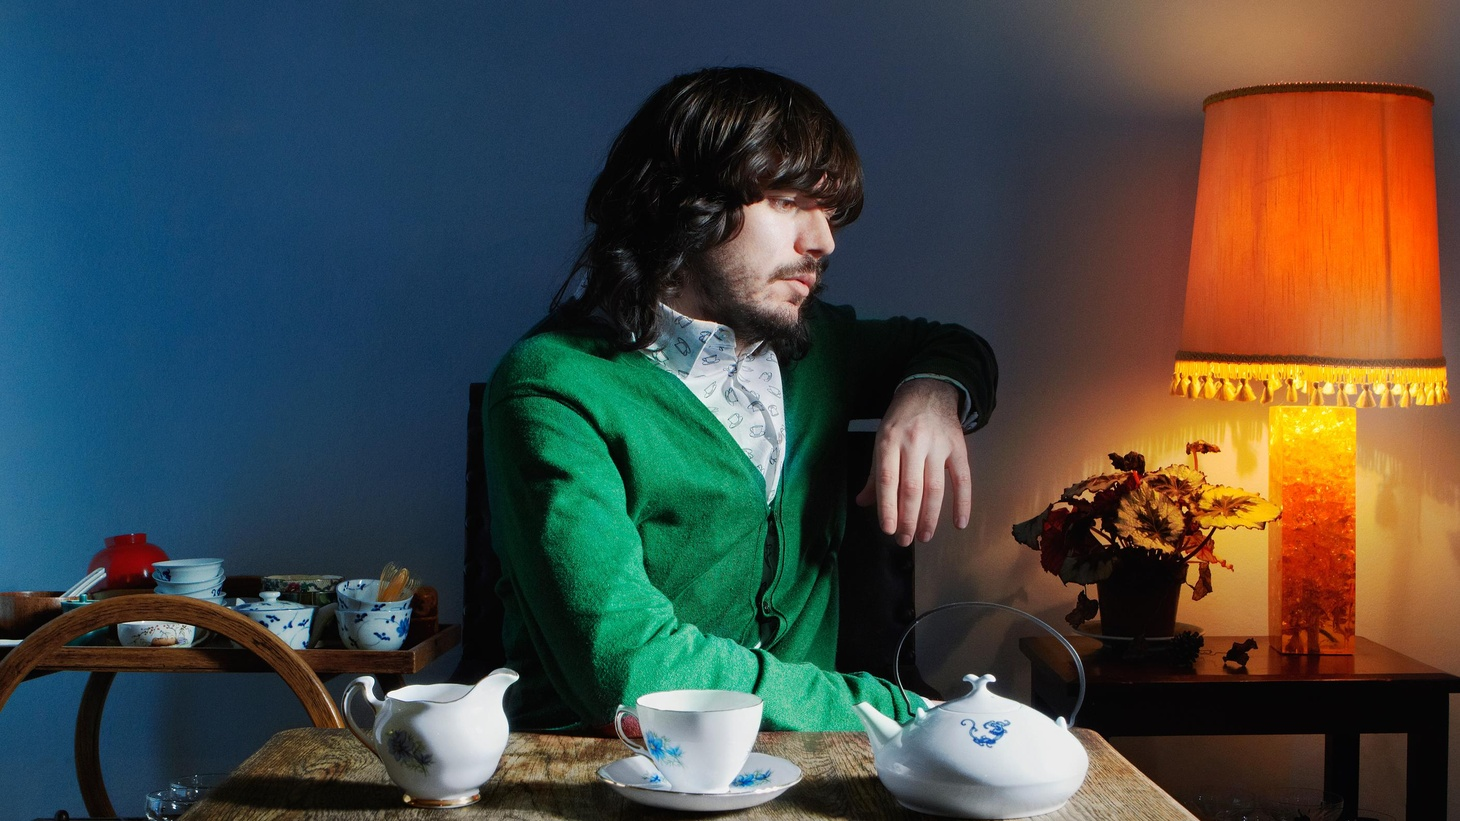 Genre-bending electronic producer Bibio let nature take its course and let the music flow as he found inspiration.